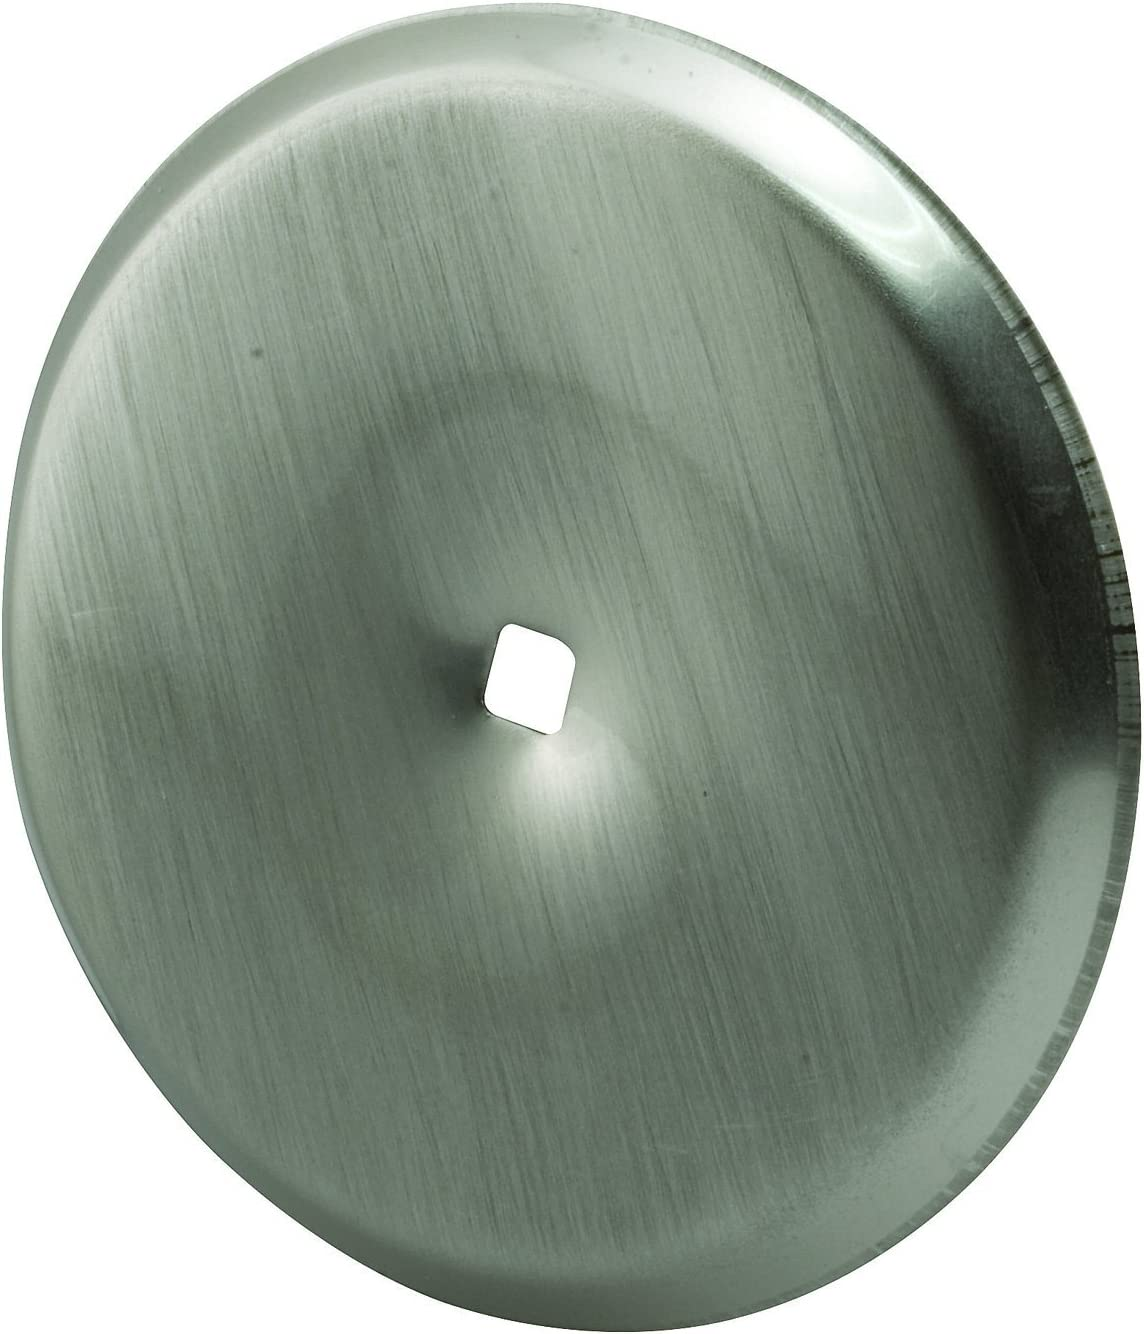 Prime-Line Products MP10420 Cabinet Knob Backplate, 2-13/16 in. Outside Diameter, Stamped Steel, Satin Nickel, 5 Piece